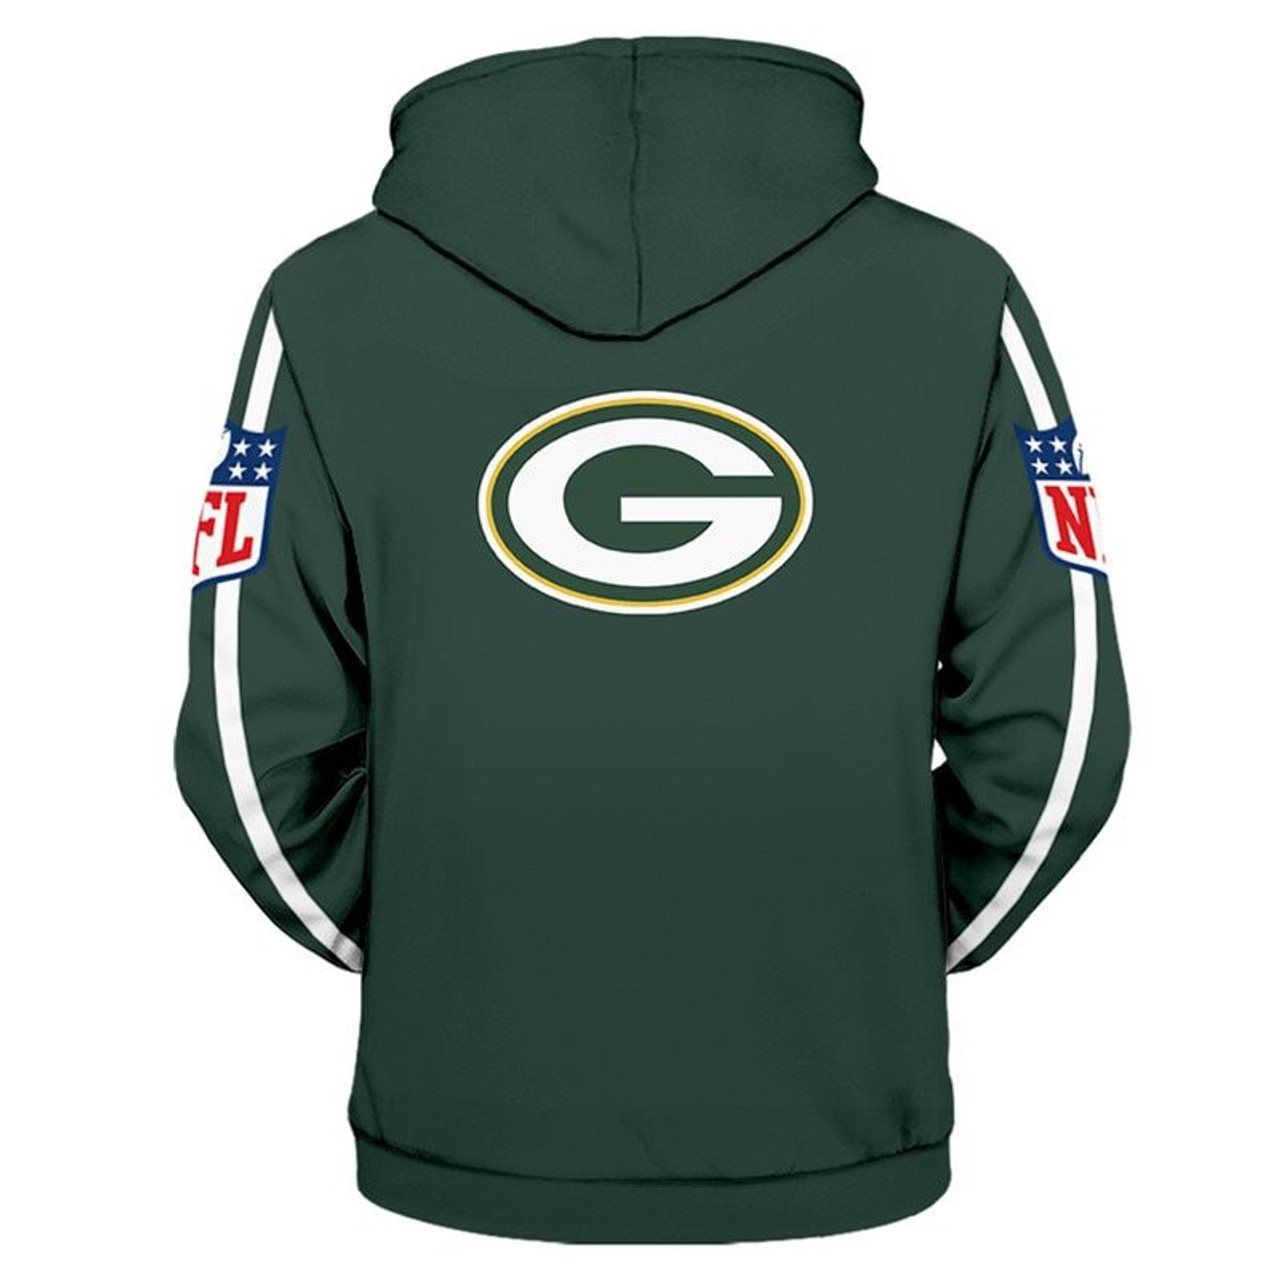 buy popular 55167 eeac6 **(OFFICIALLY-LICENSED-N.F.L.GREEN-BAY-PACKERS-TEAM-PULLOVER-HOODIES/NICE-CUSTOM-3D-GRAPHIC-PRINTED-DOUBLE-SIDED-ALL-OVER-OFFICIAL-PACKERS-LOGOS  & ...